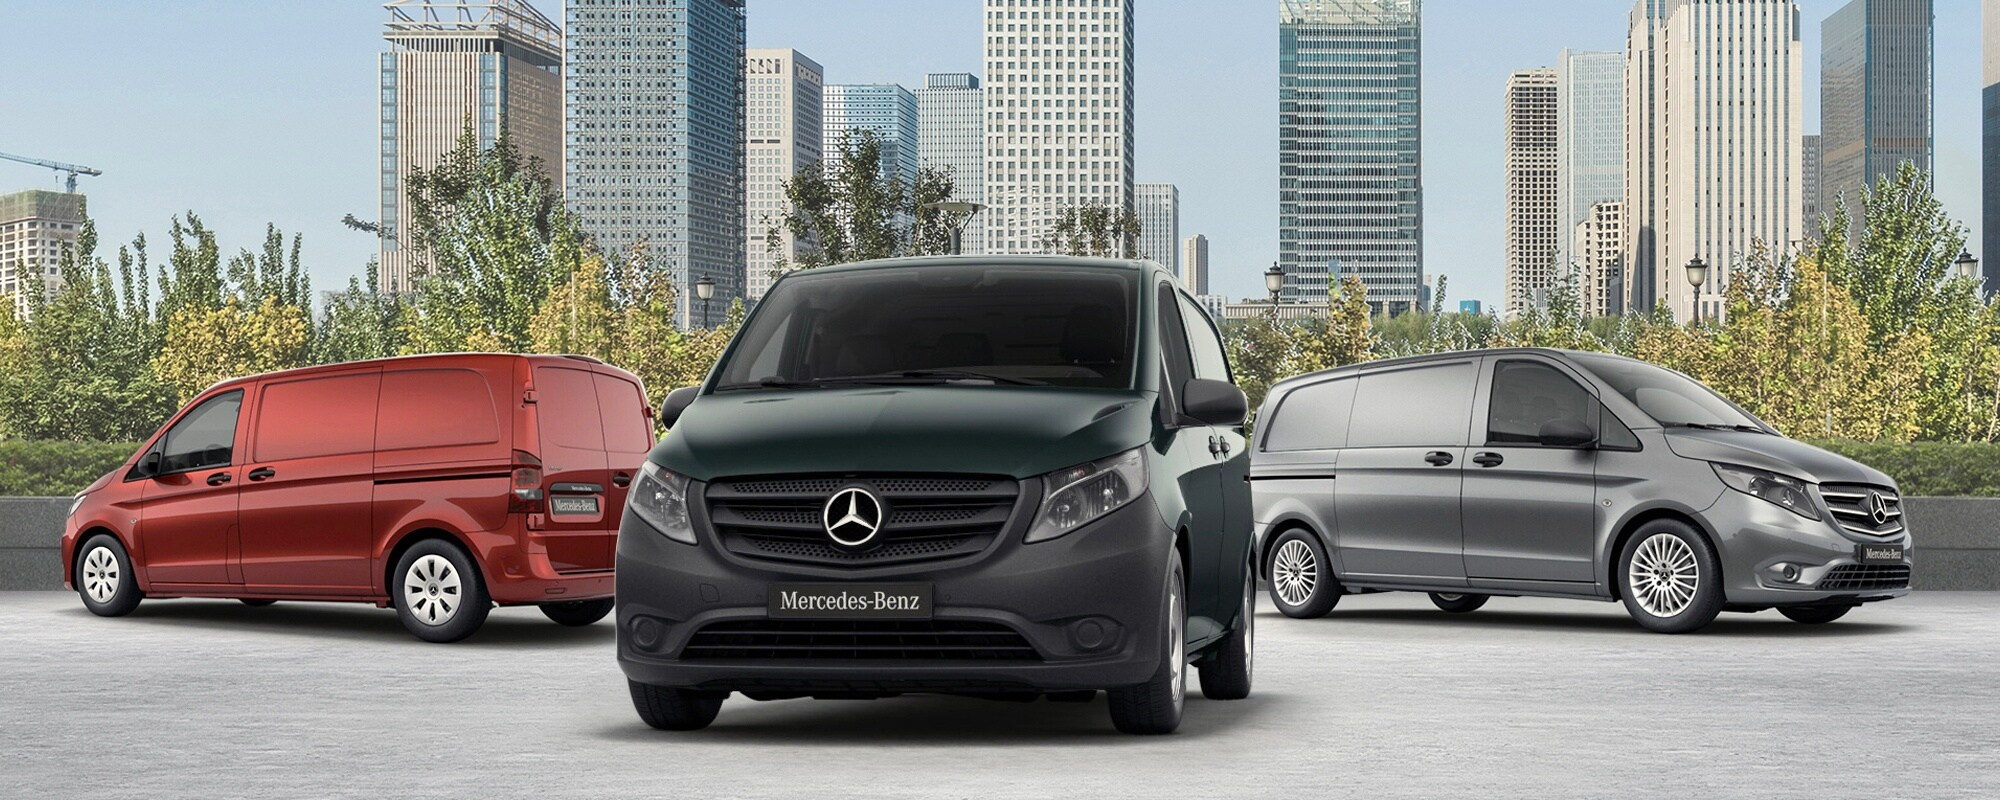 Mercedes-Benz Vans UK, The BIG Event